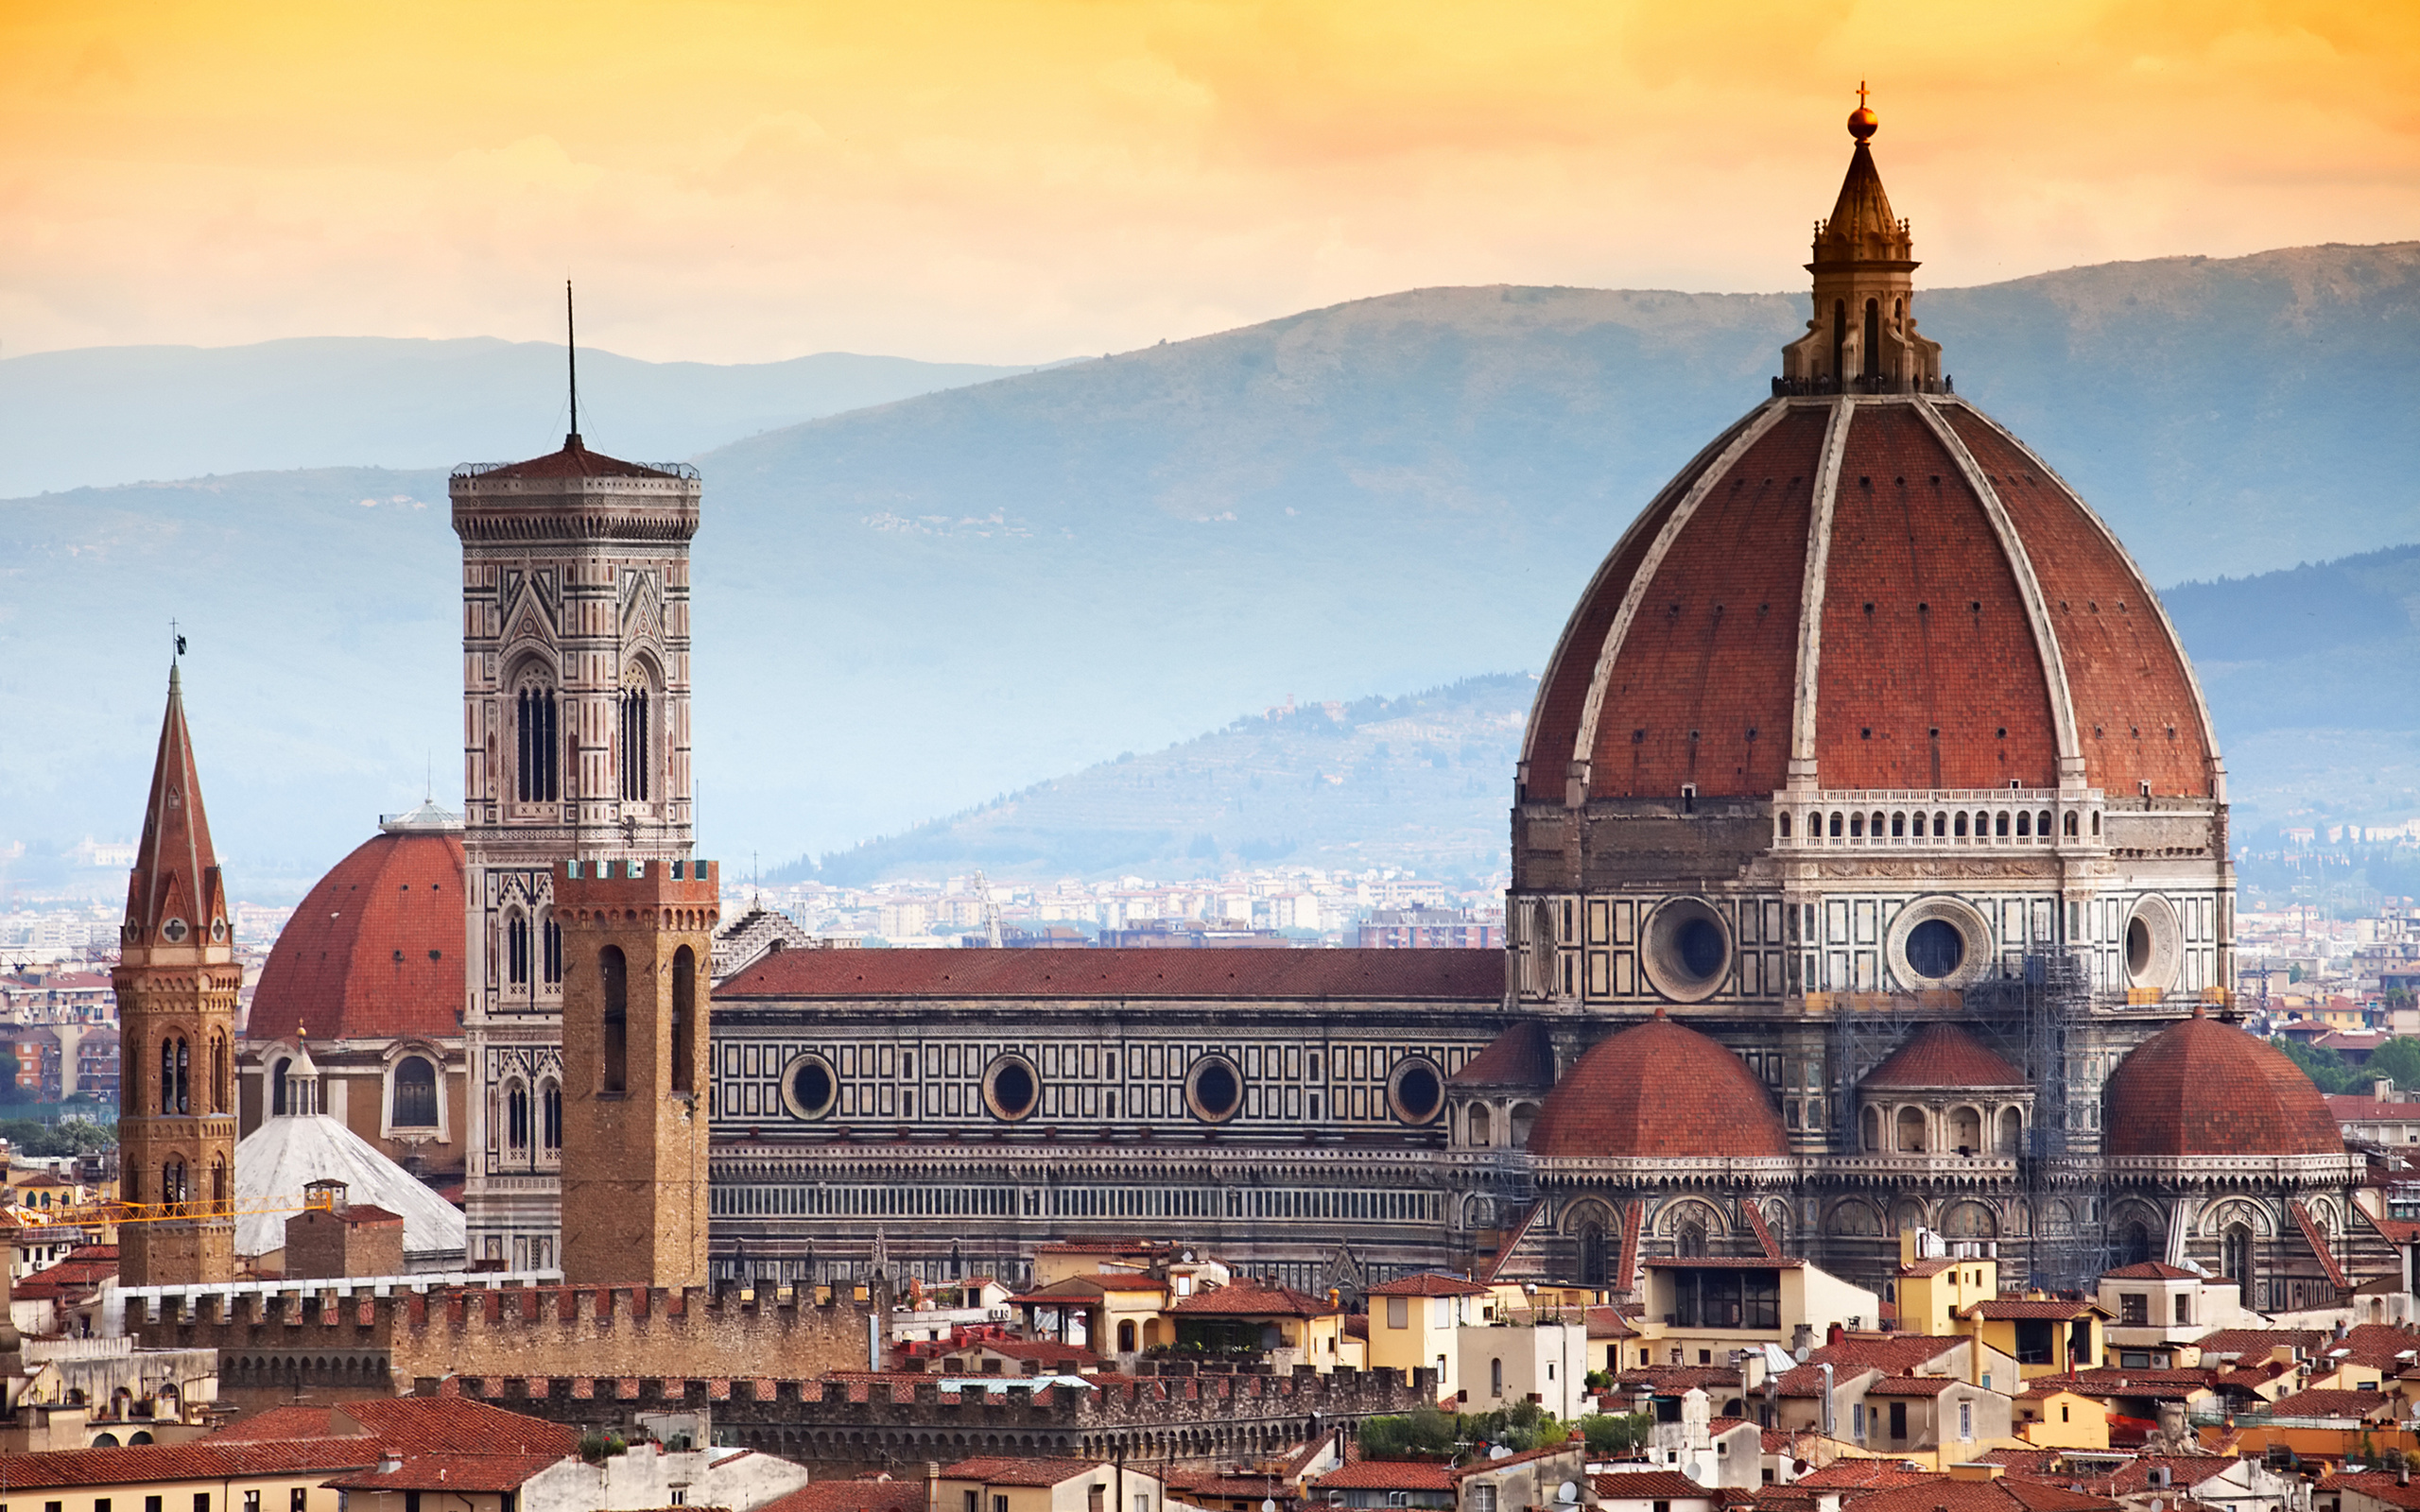 Picture of duomo cathedral of santa maria dei fiore for Domon florence